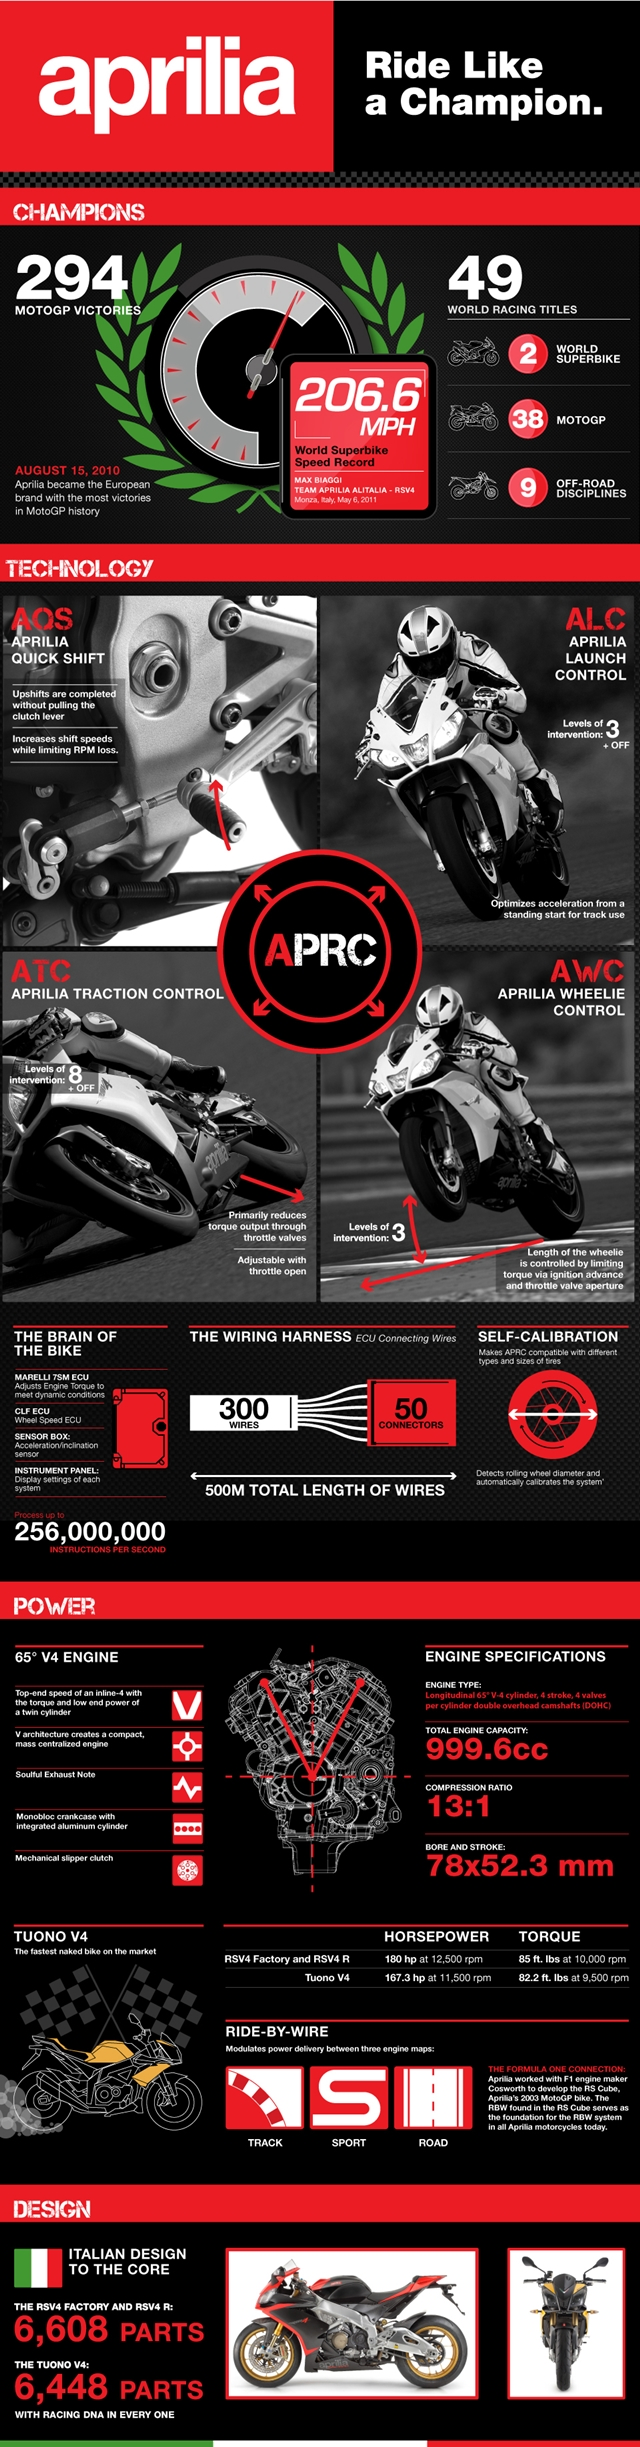 Aprilia Tuono V4 and RSV4 facts - click to enlarge